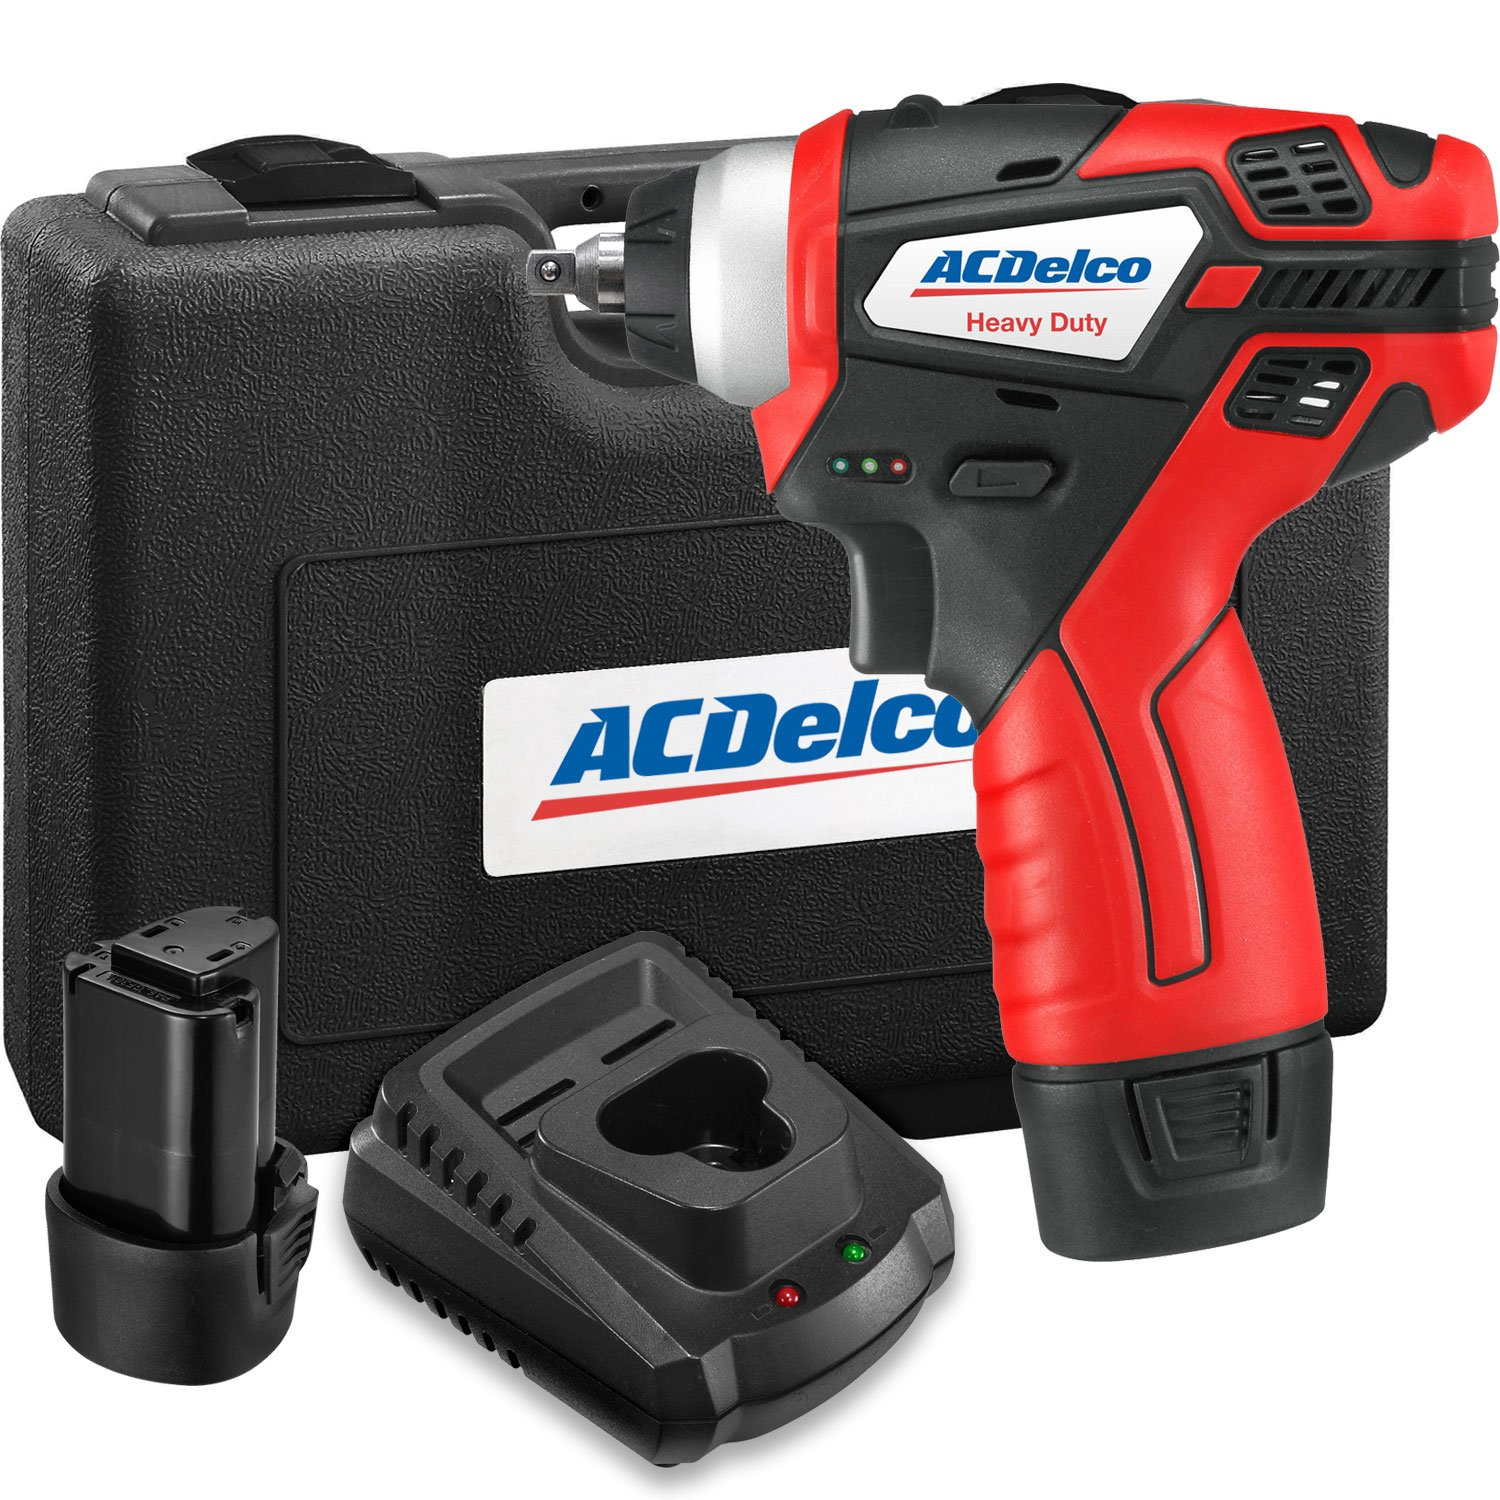 ACDelco 1/4'' Power Impact Wrench Cordless Li-ion 12V Max Compact Tool kit with Charger, 2 Batteries, and Carrying Case, G12 Series - ARI12104-2